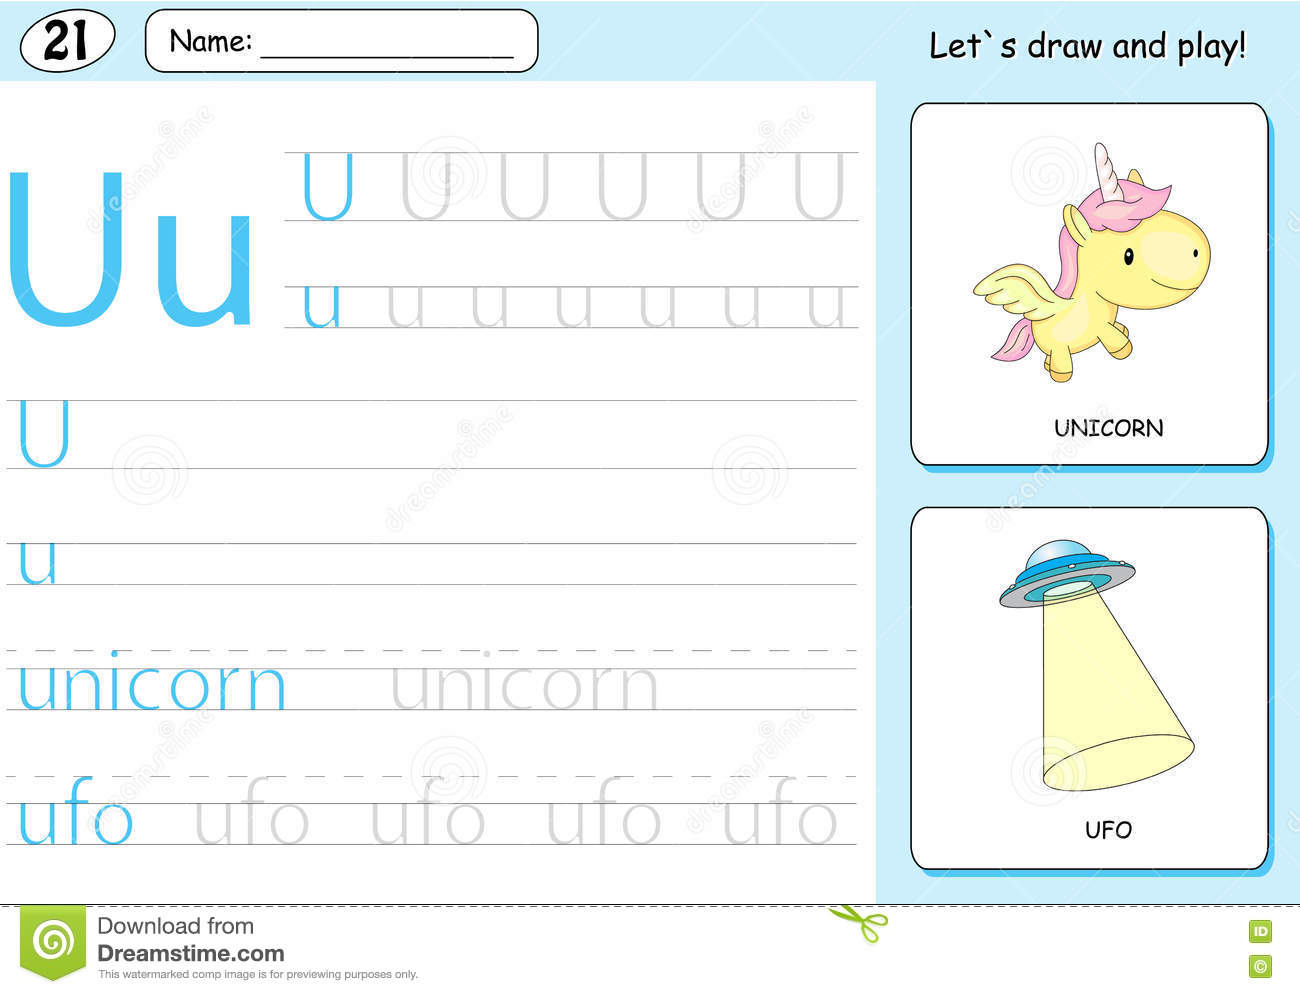 Cartoon Unicorn And Ufo Alphabet Tracing Worksheet